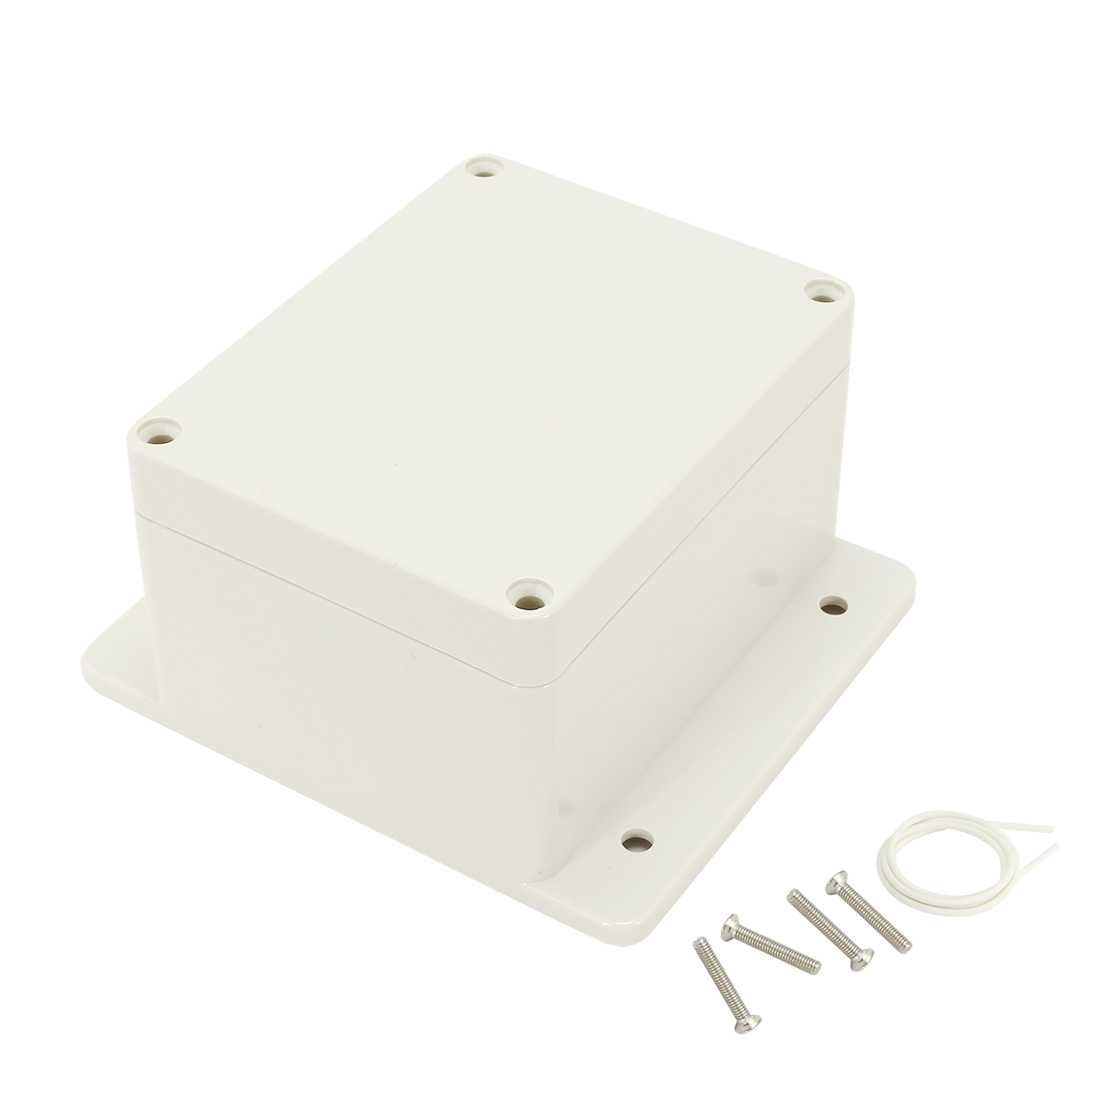 "4.53""x3.54""x2.76""(115mmx90mmx70mm) ABS Junction Box Universal Electric Project Enclosure w Fixed Ear"